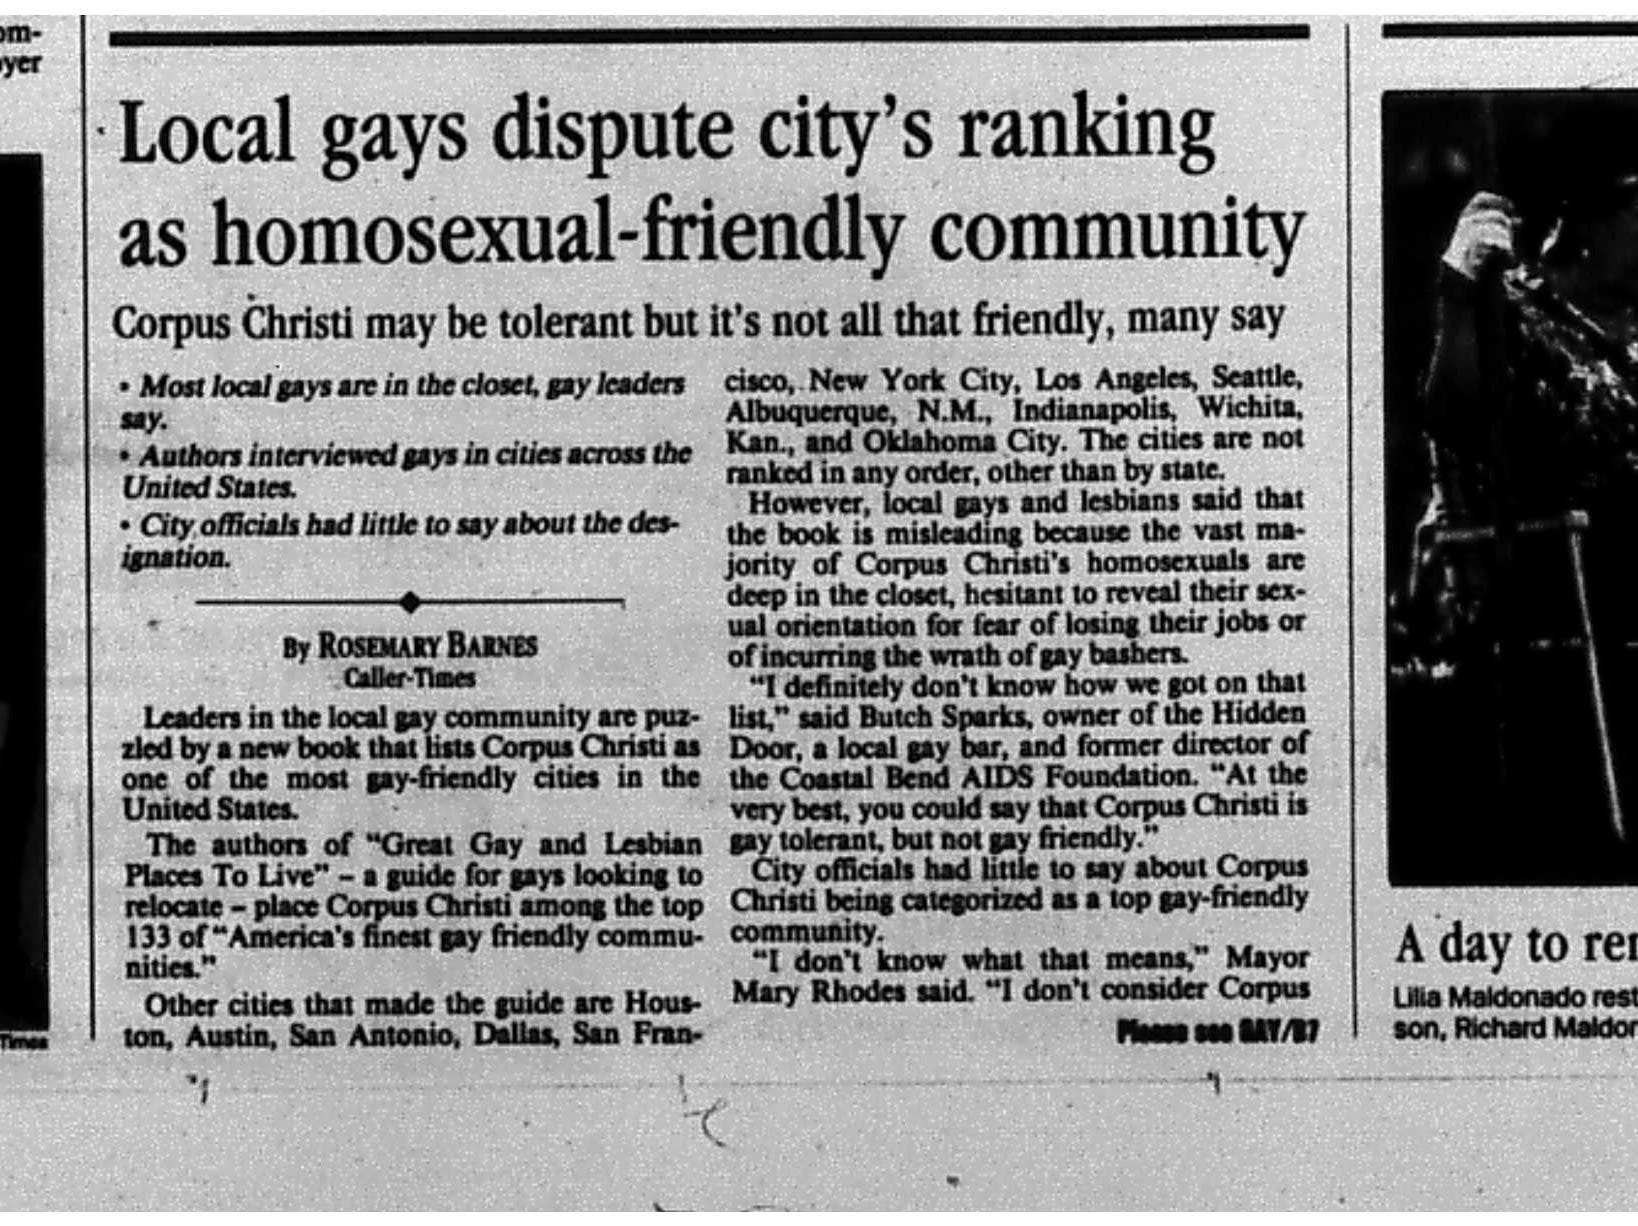 An article from the November 3, 1995 Caller-Times with local gay people disputing Corpus Christi being ranked as a gay-friendly city. (1 of 2)